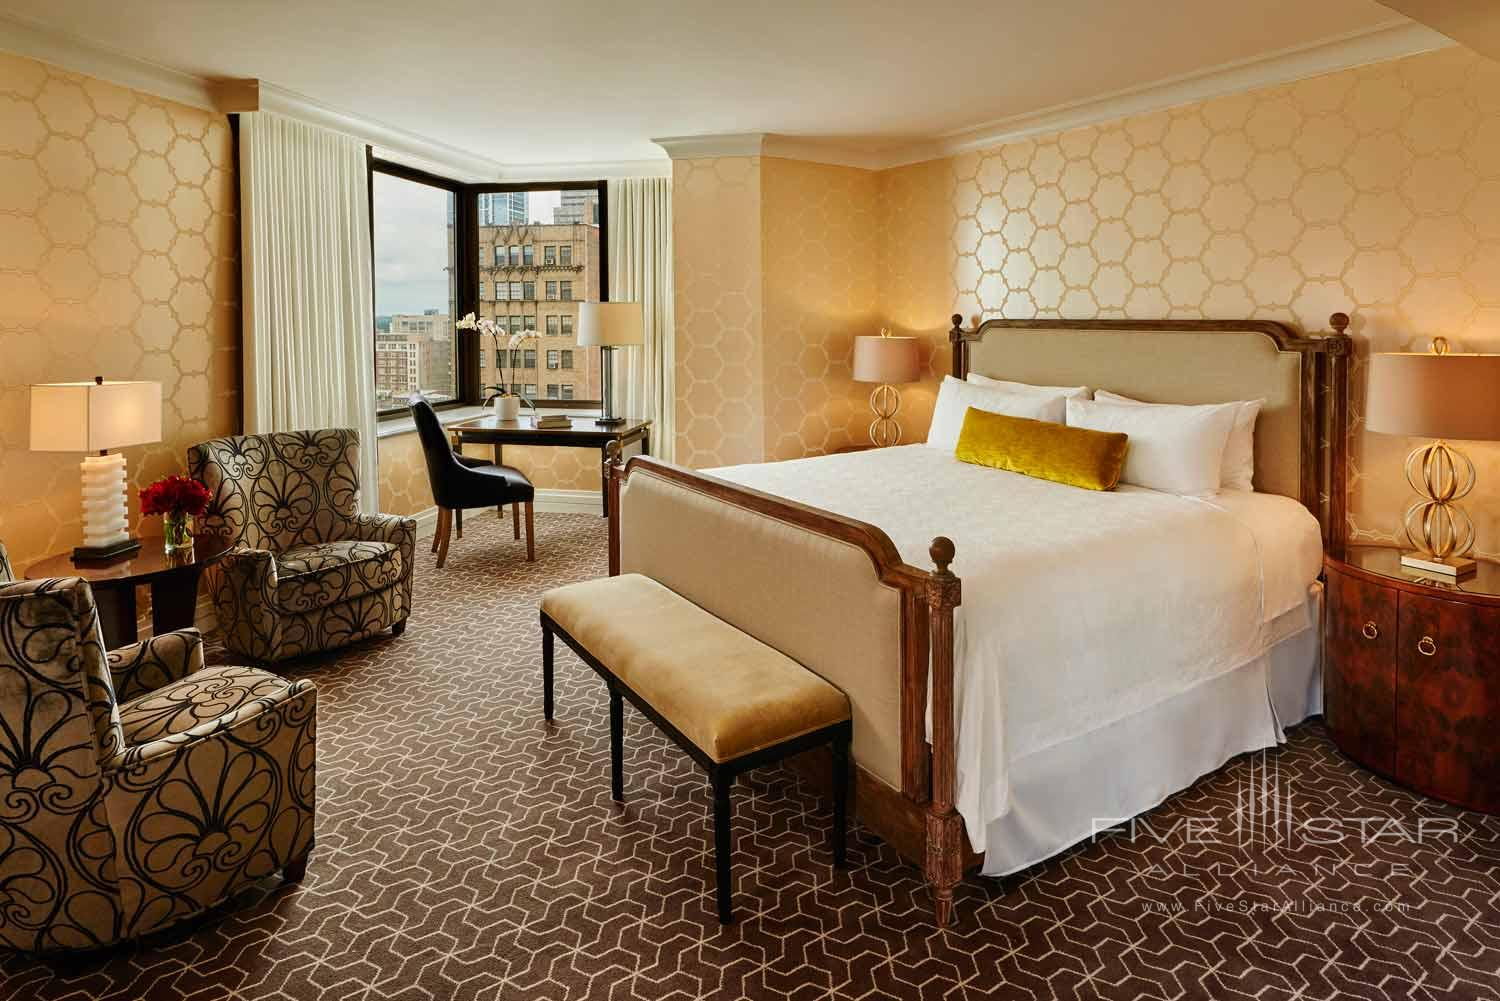 Studio Suite at Rittenhouse Hotel, Philadelphia, PA